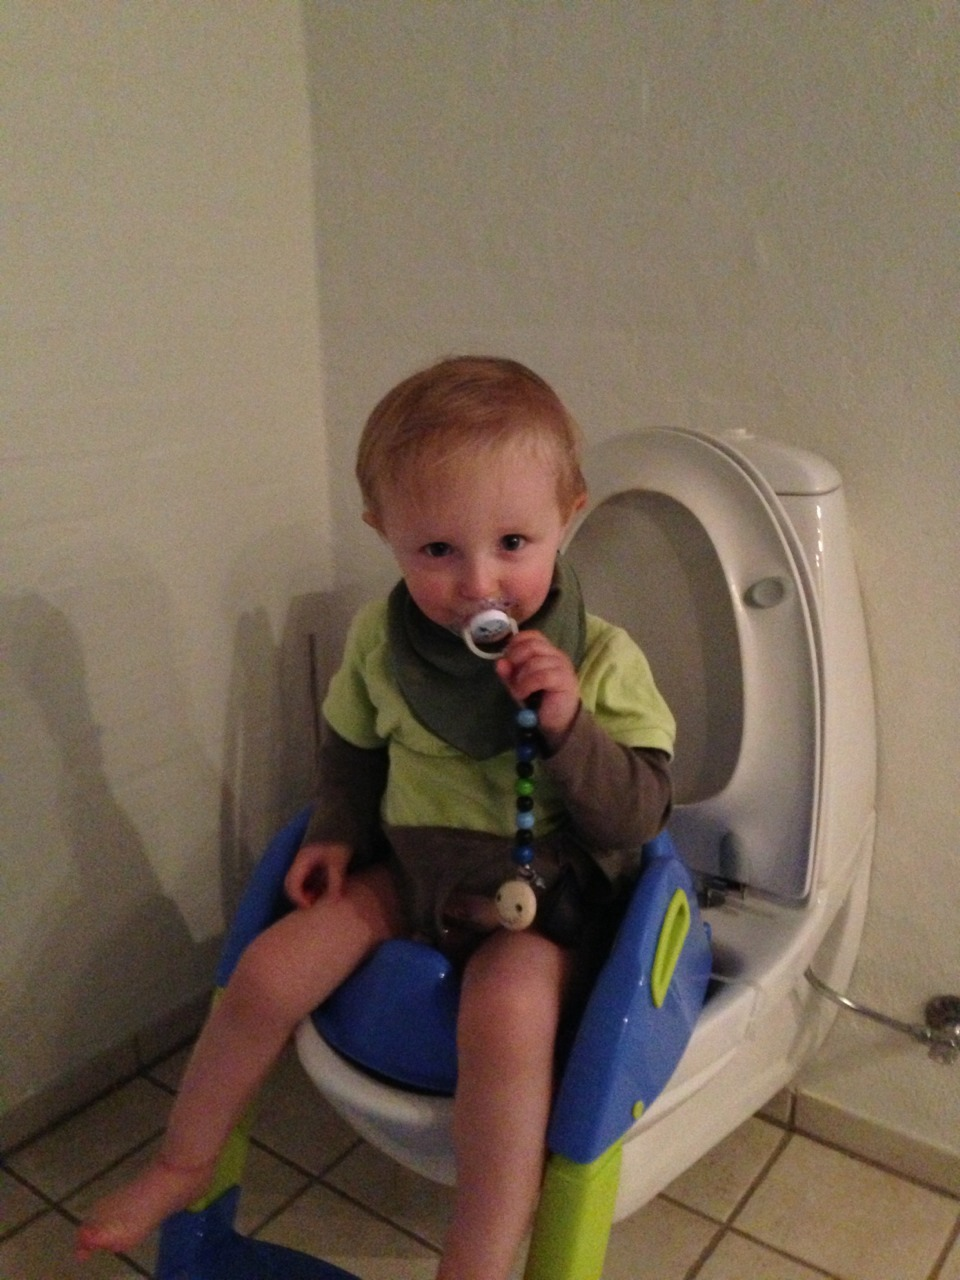 Sebastian, aged 18 months, has already peed twice on the toilet - at his own request I might add. Was forced to dig out the kiddie toilet seat from the room behind the garage. Had not counted on needing it any time soon. His mother and I are in awe.